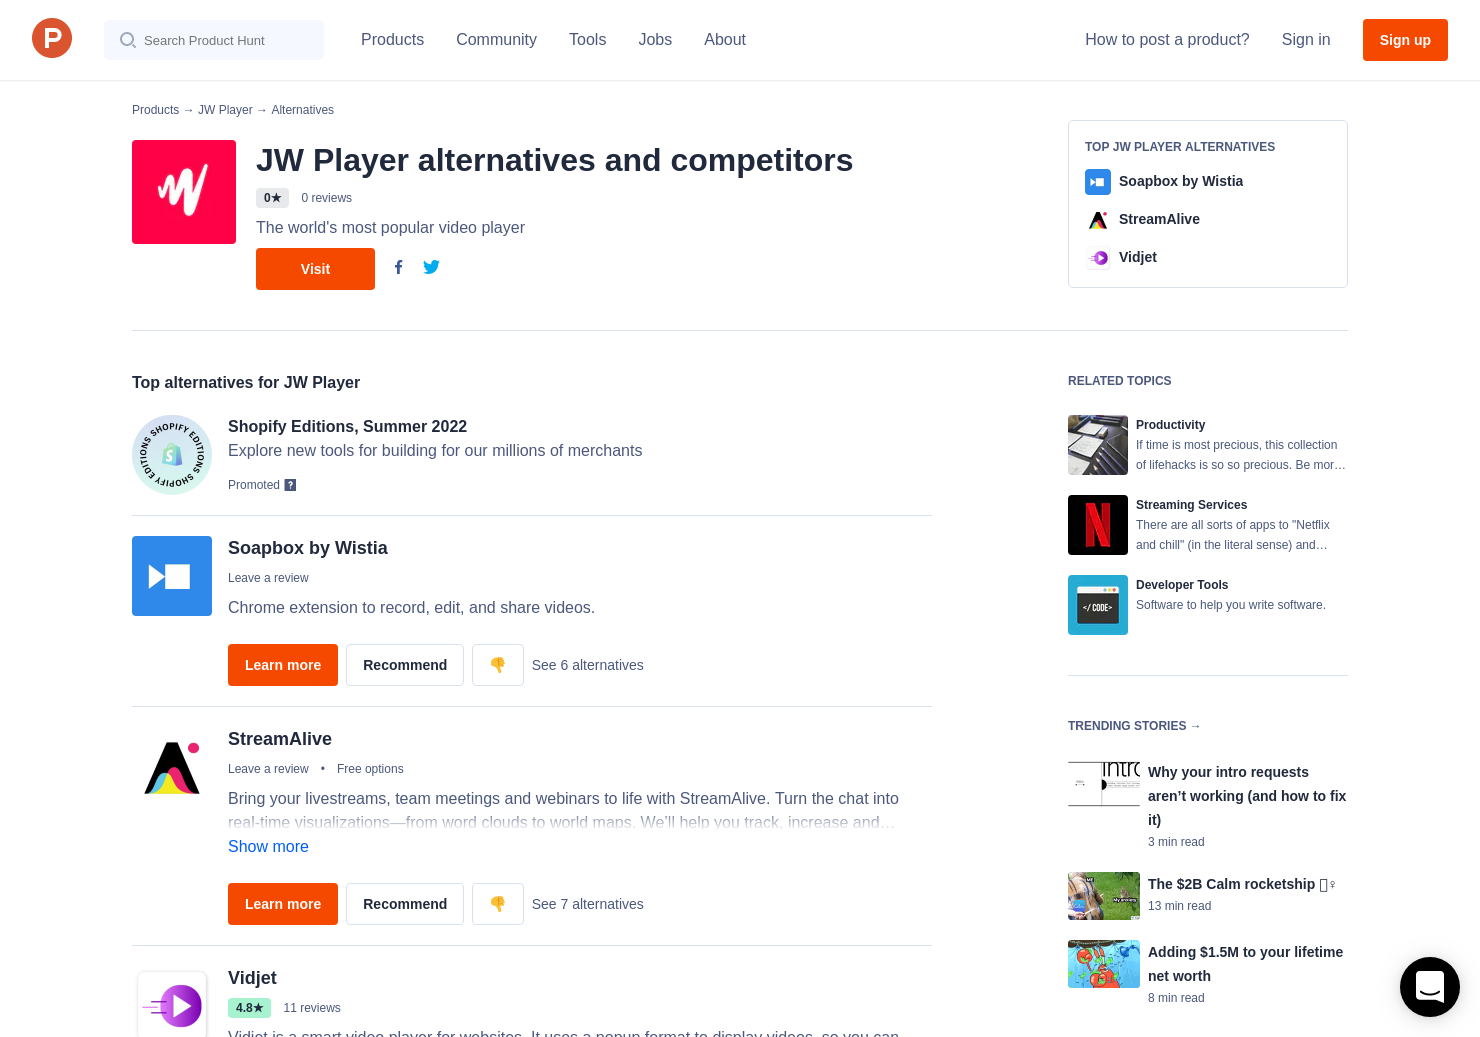 11 Alternatives to JW Player 2 0 | Product Hunt